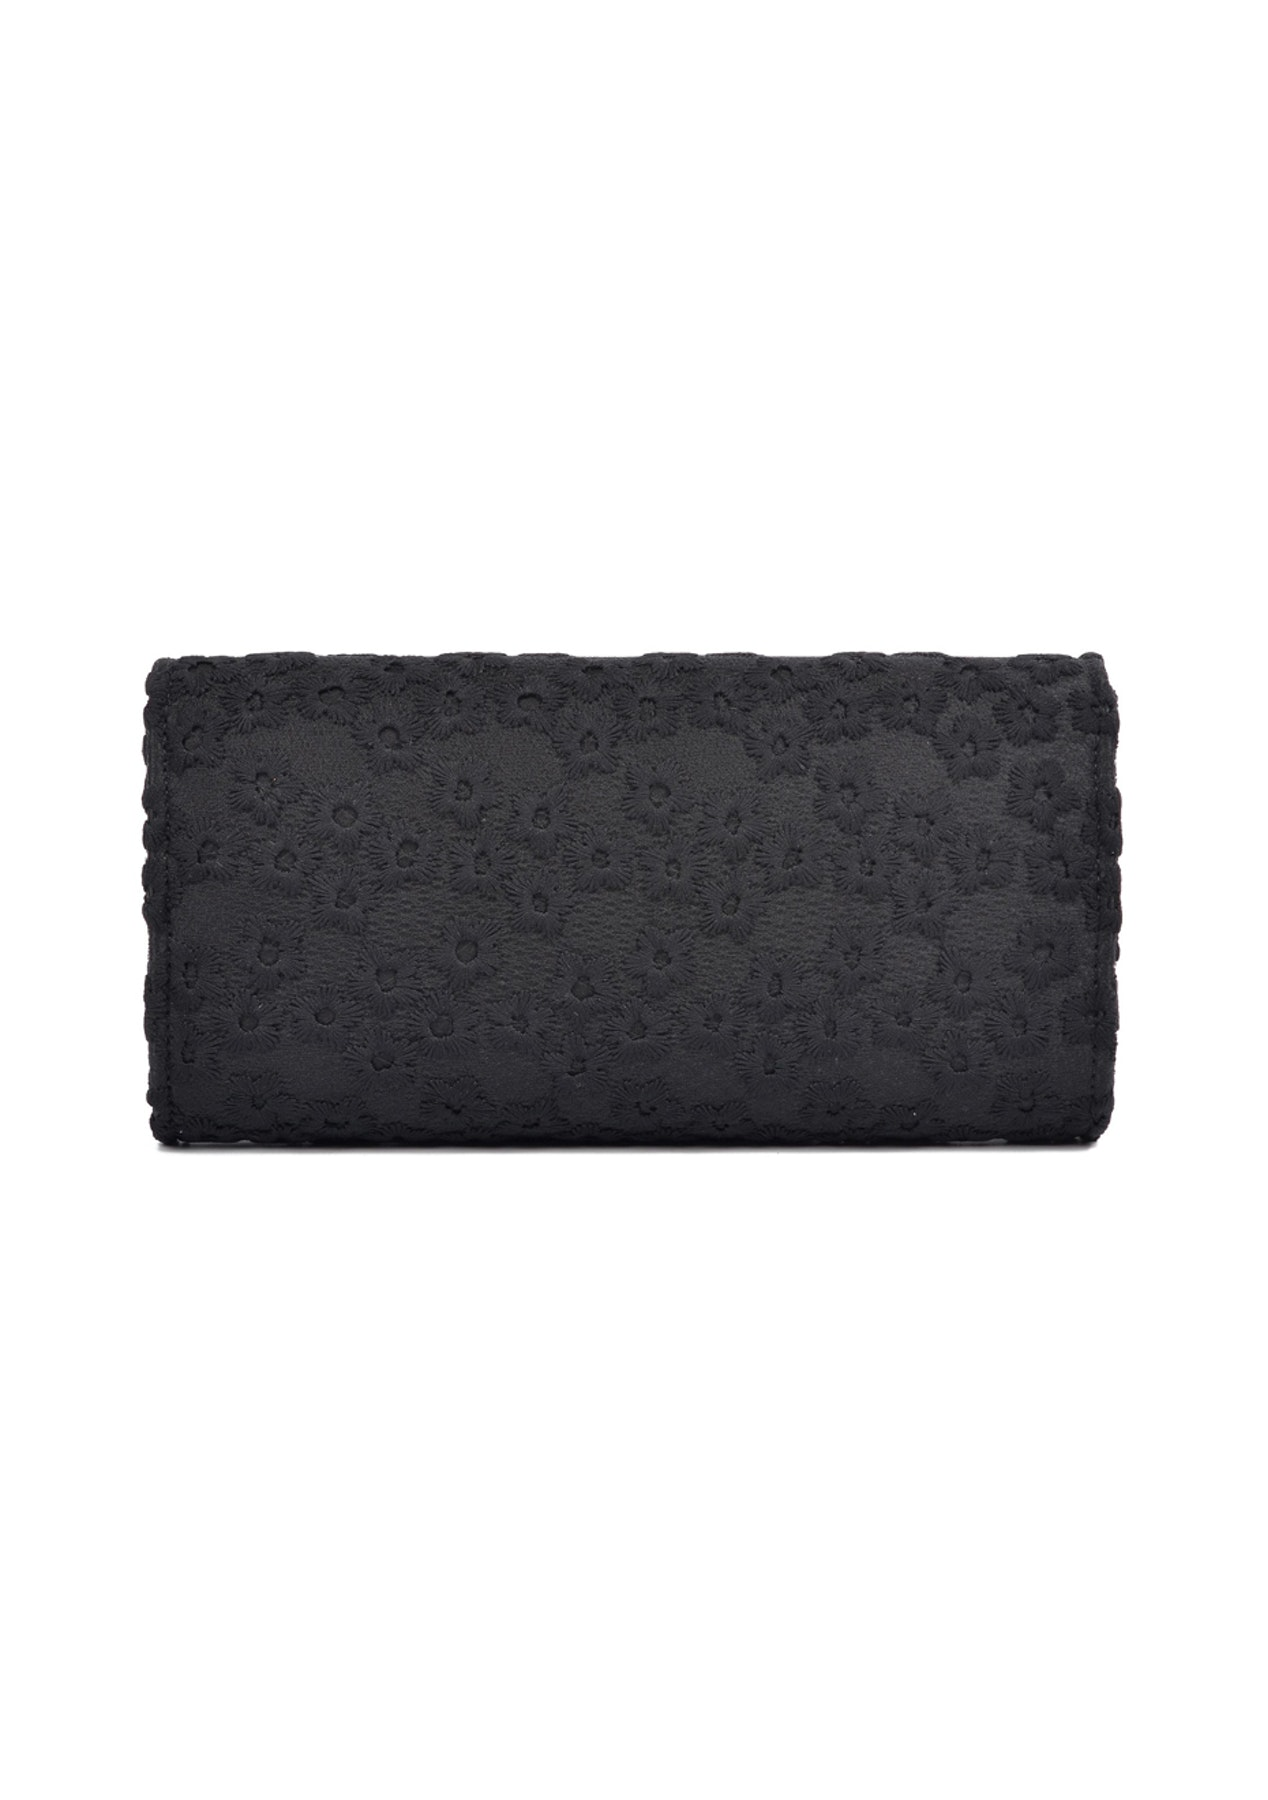 9e99d29941e8 Mangotti Bags - Clutch - NERO - Pre Sale Clutches and Bags - Onceit